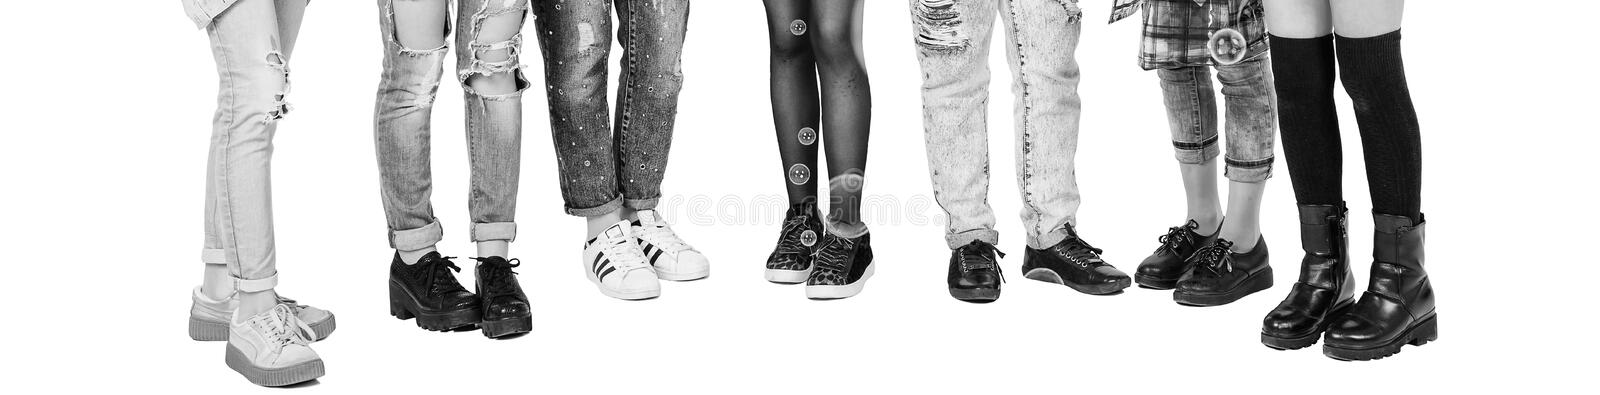 Teenagers girls have fun together with bubble isolated on white background. Teenagers lifestyle casual culture style concept royalty free stock photography